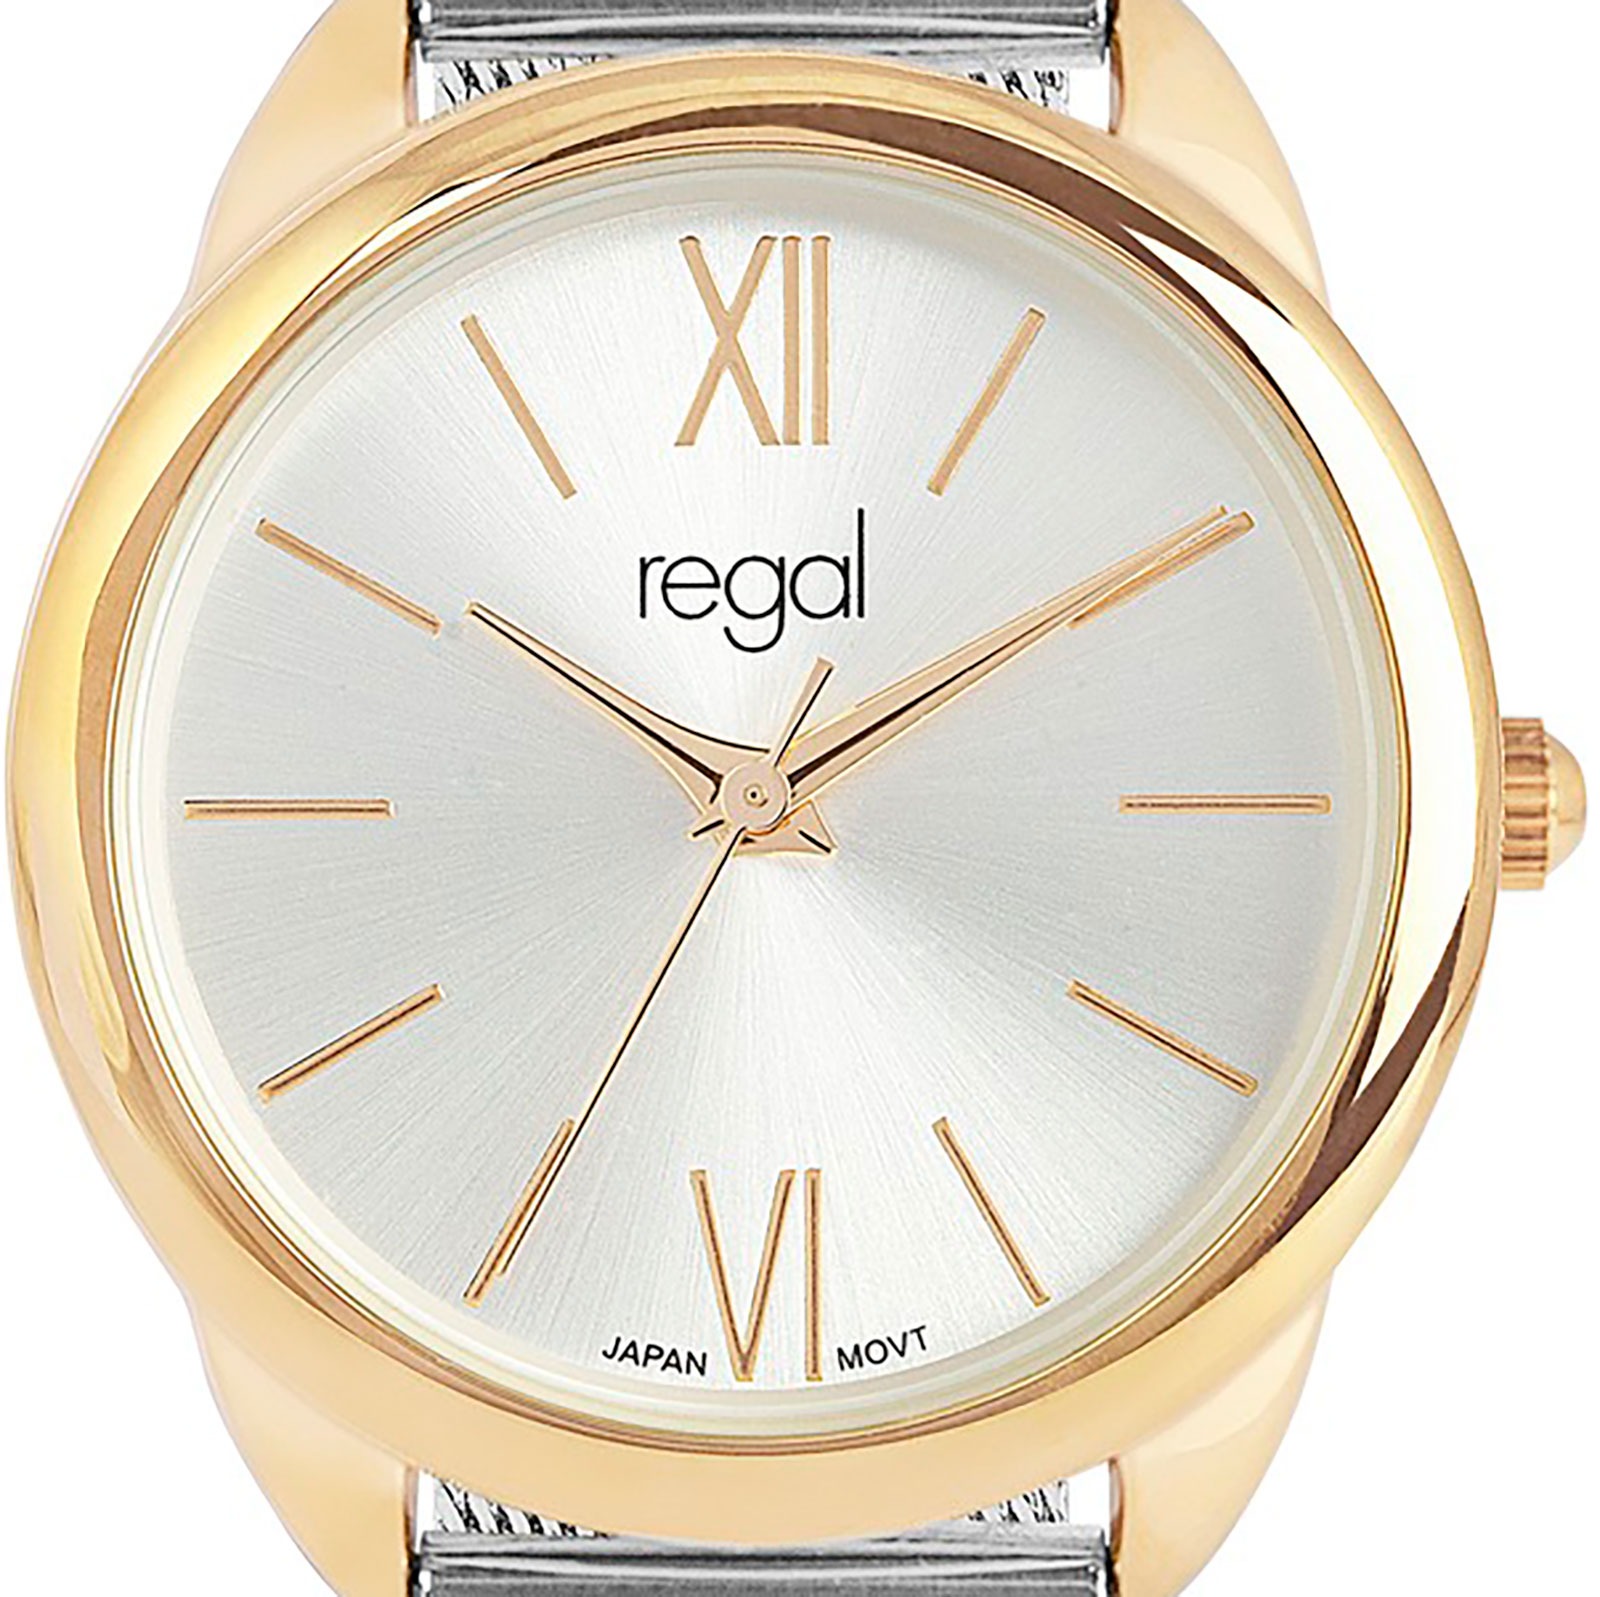 Regal Set med armband i presentbox